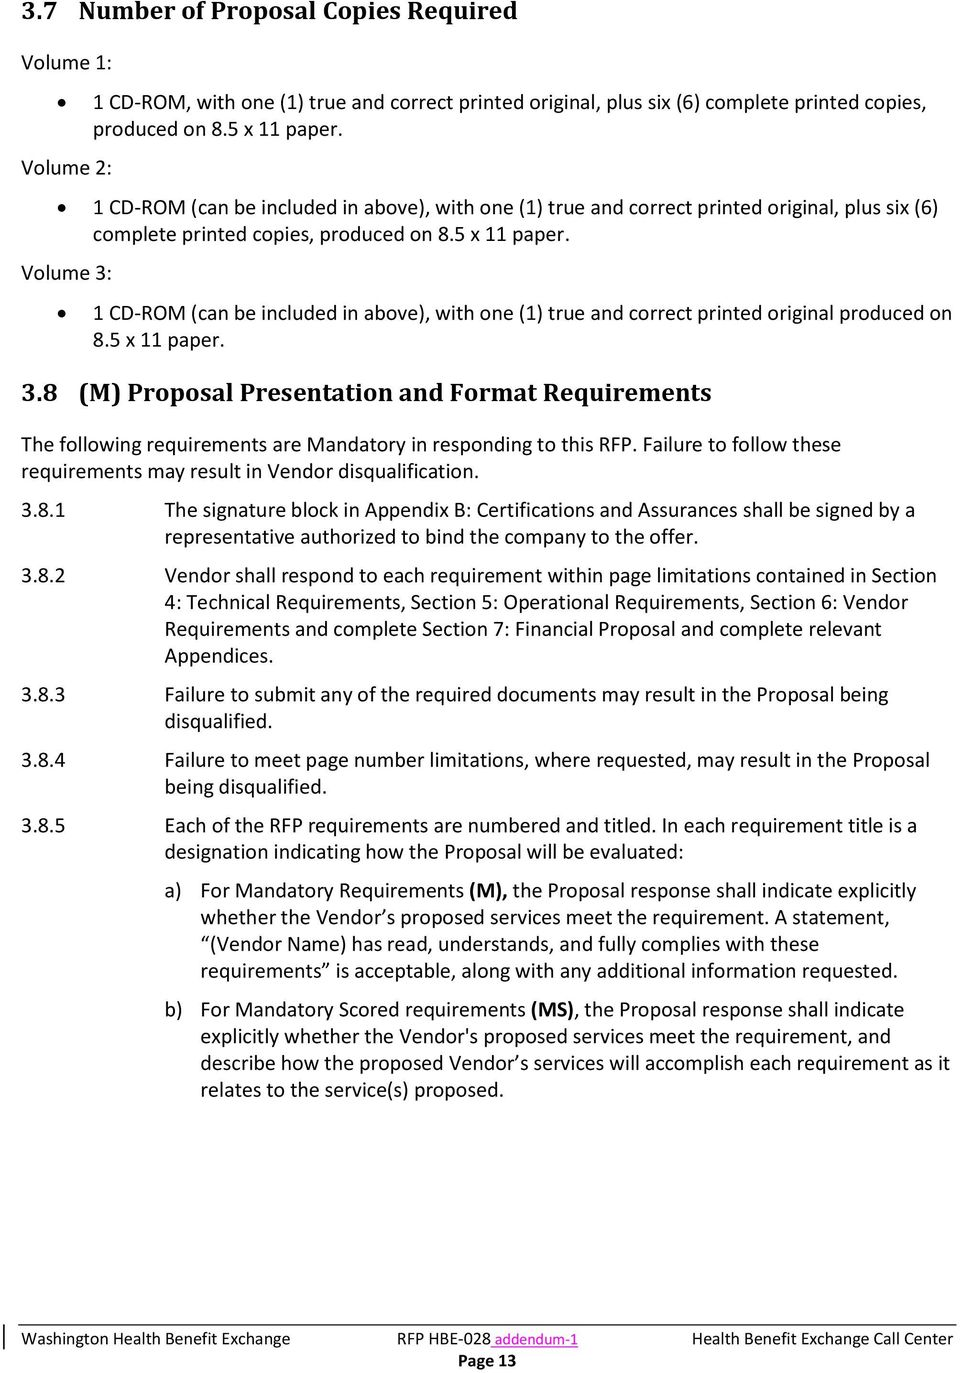 Volume 3: 1 CD-ROM (can be included in above), with one (1) true and correct printed original produced on 8.5 x 11 paper. 3.8 (M) Proposal Presentation and Format Requirements The following requirements are Mandatory in responding to this RFP.